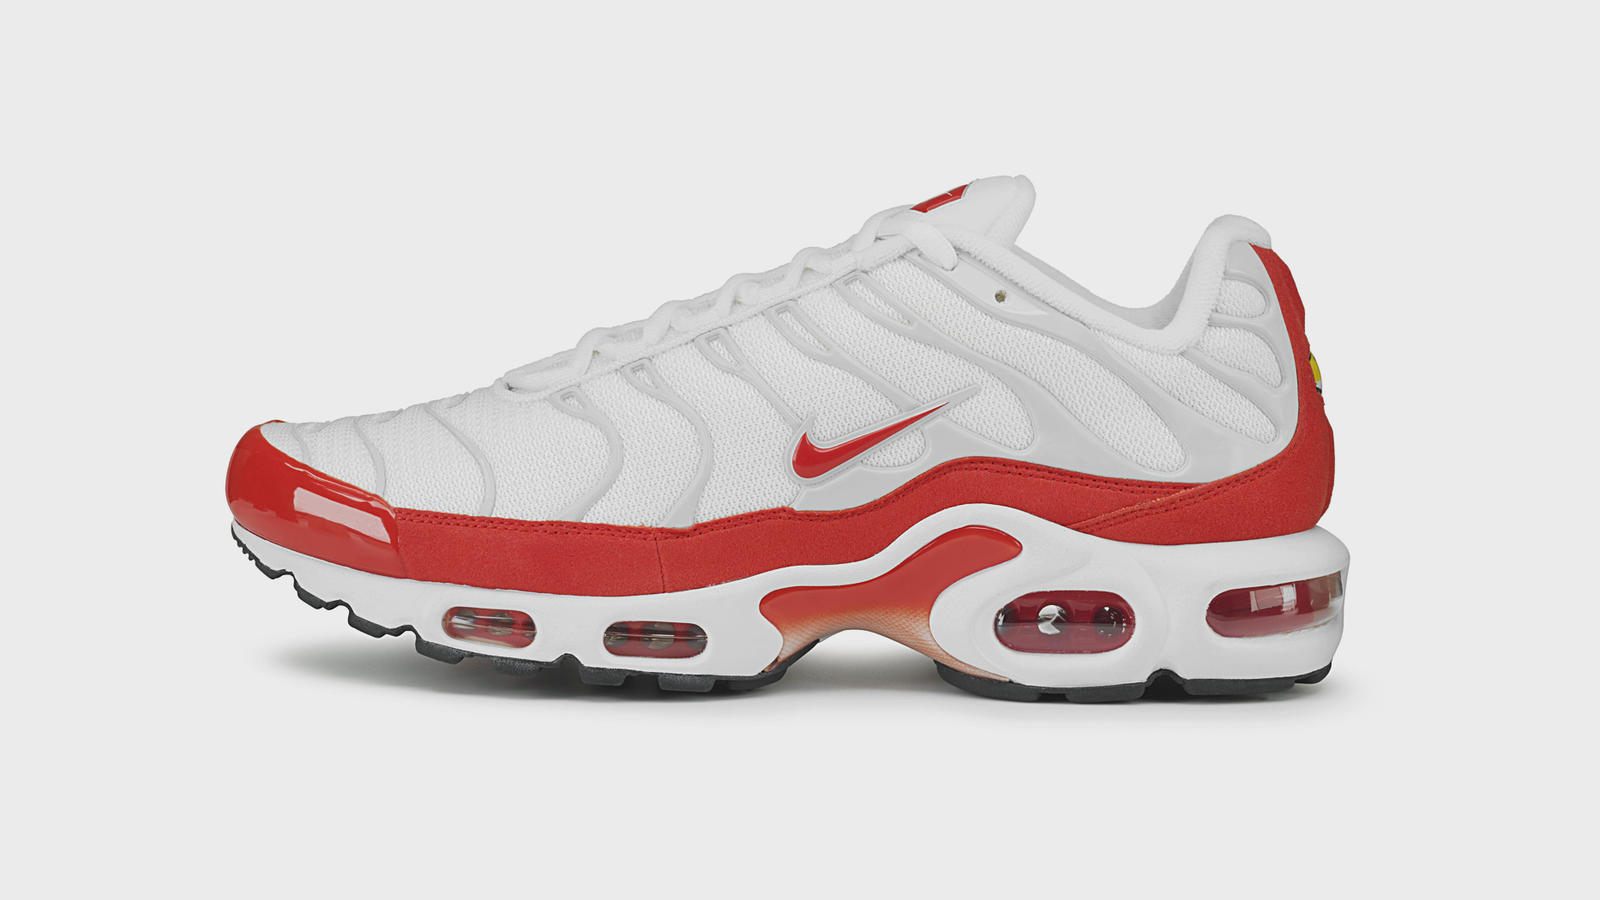 best value eb6b1 08206 Nike Air Max Plus TN History - Nike News